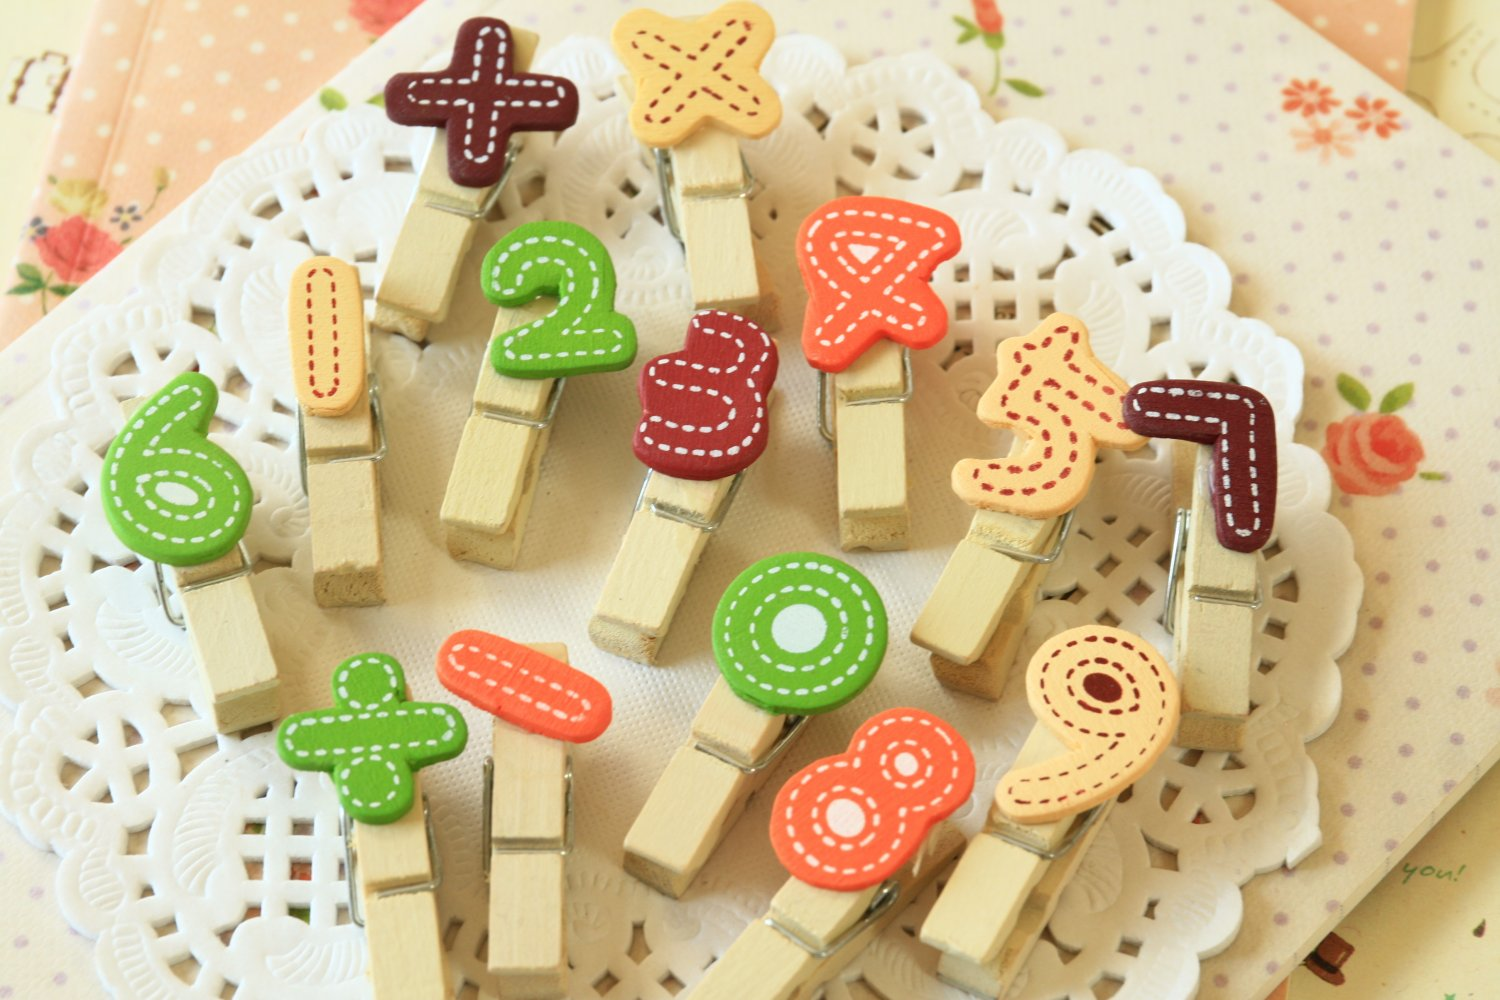 Colorful Numbers & Symbols Wood Pegs Clips